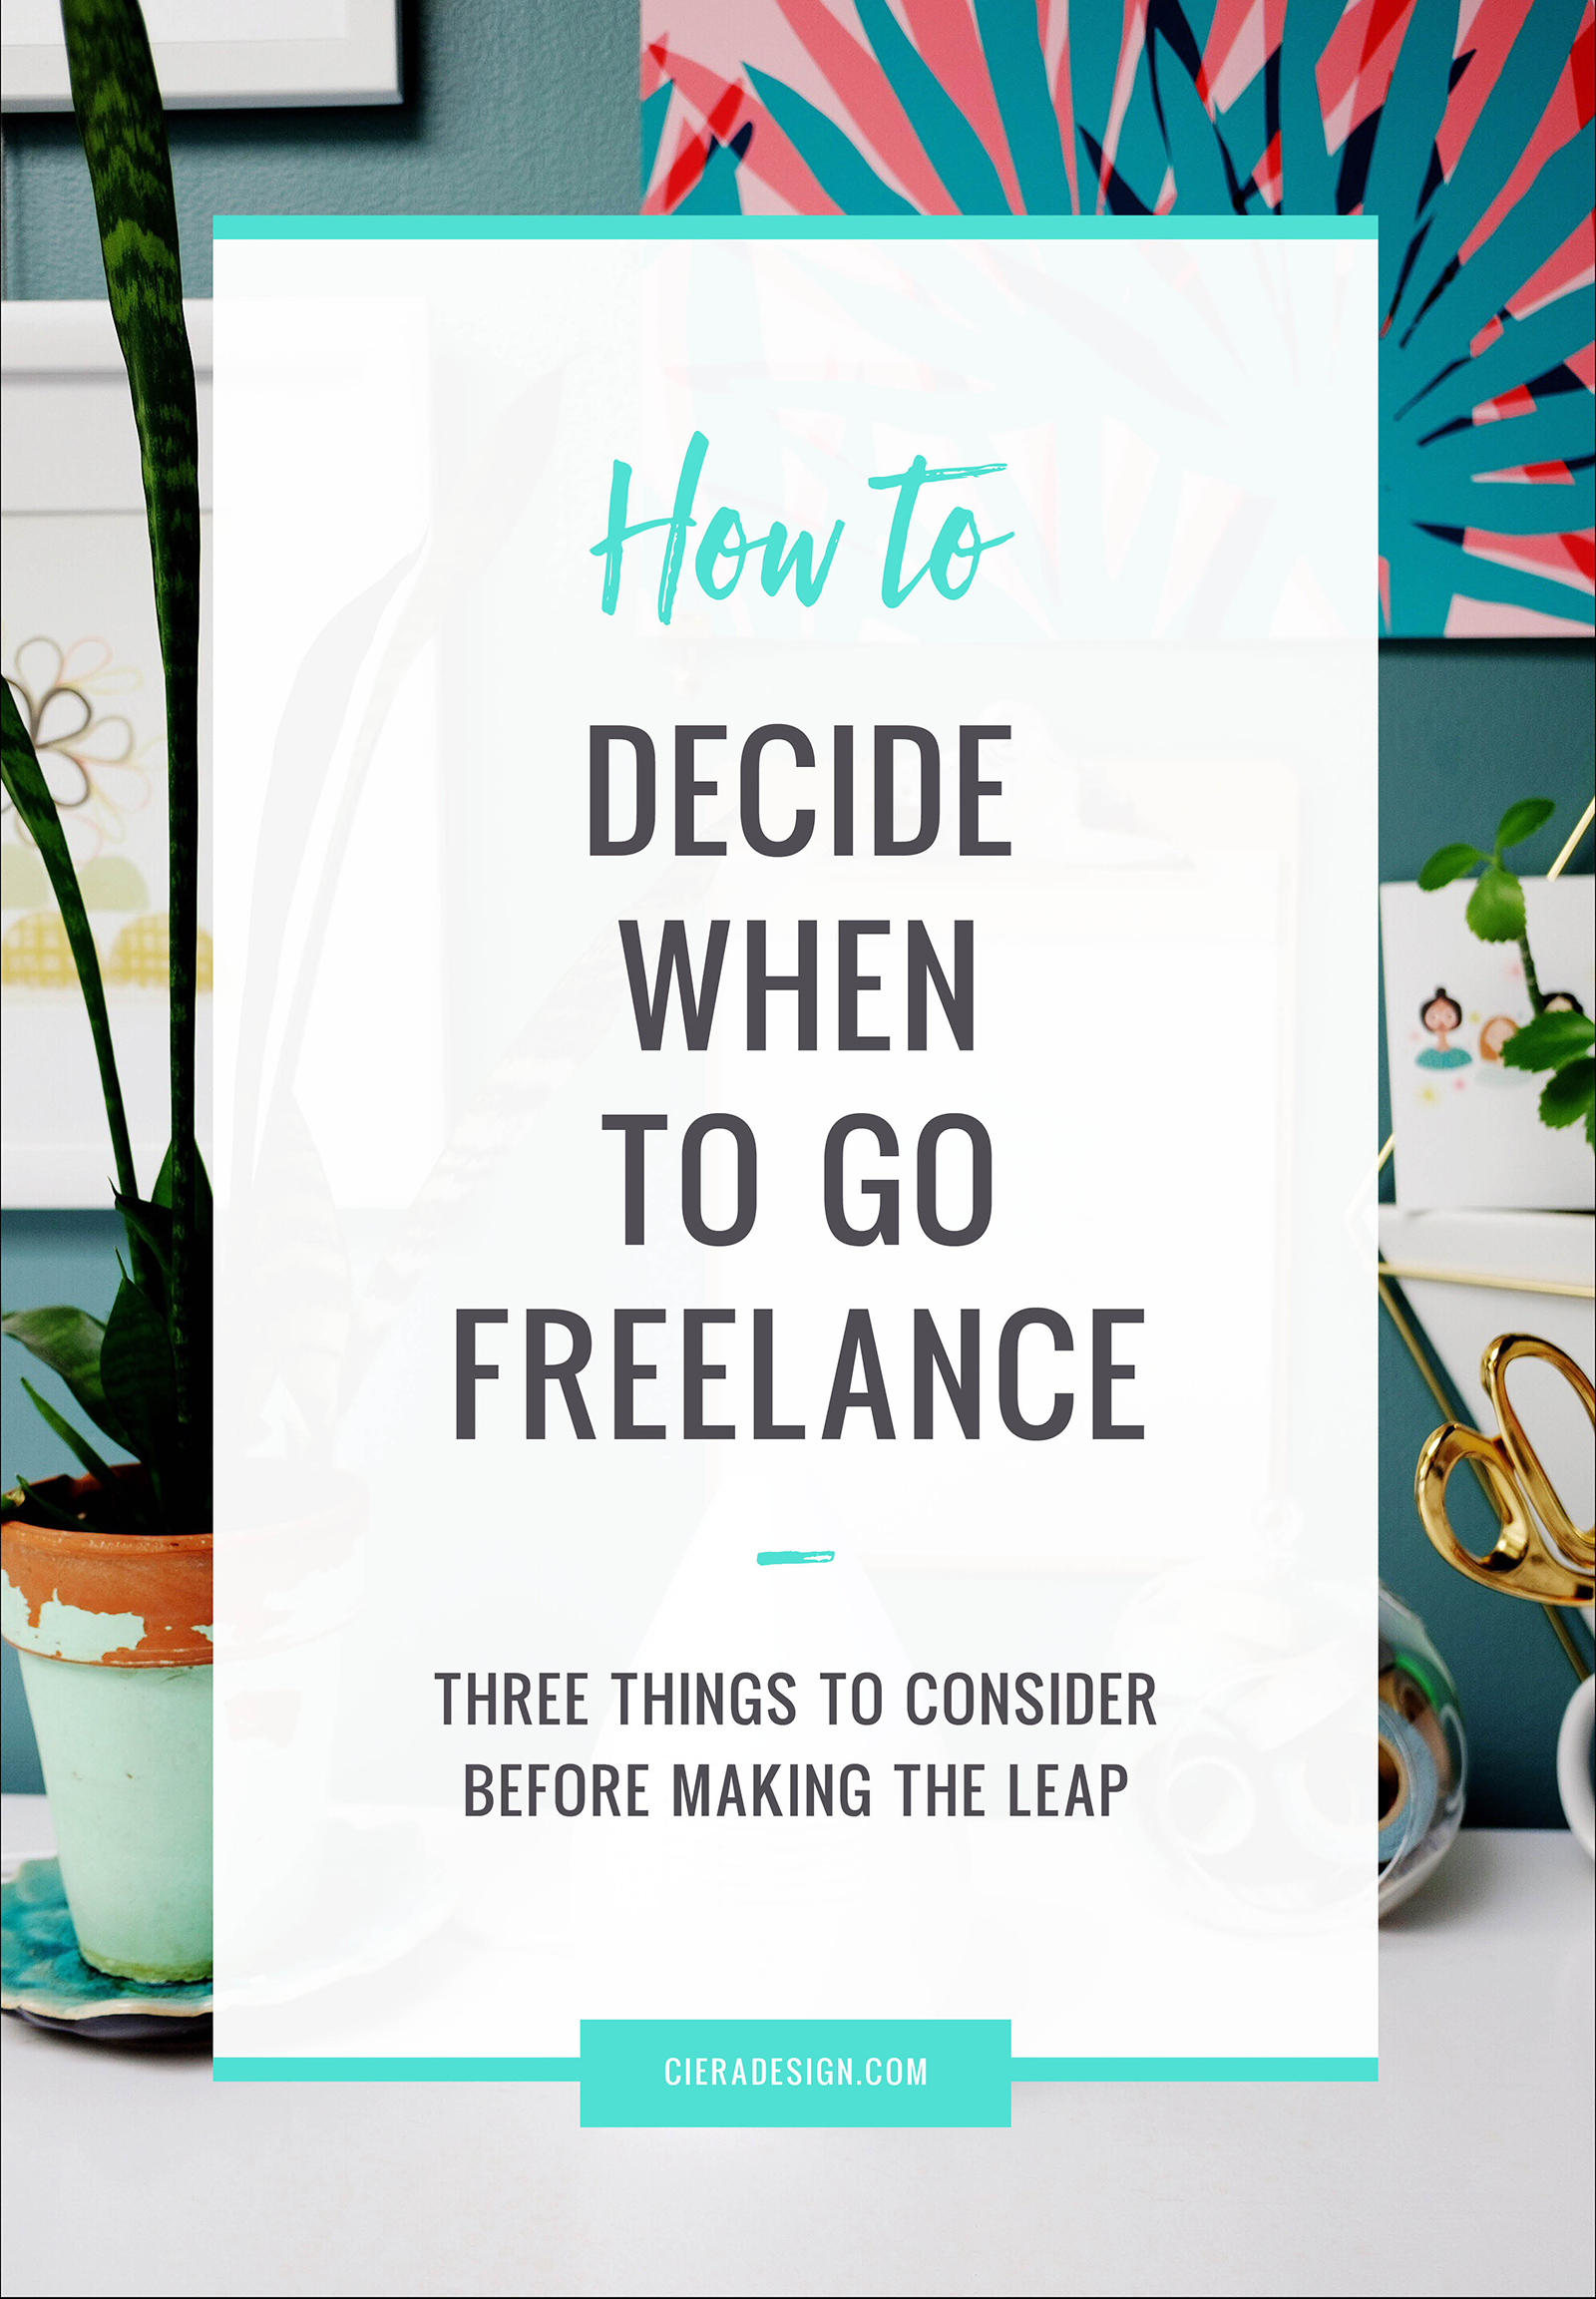 Have you been dangling on the fence about whether to leave your full-time design job to go freelance? Consider these three things before making the leap.